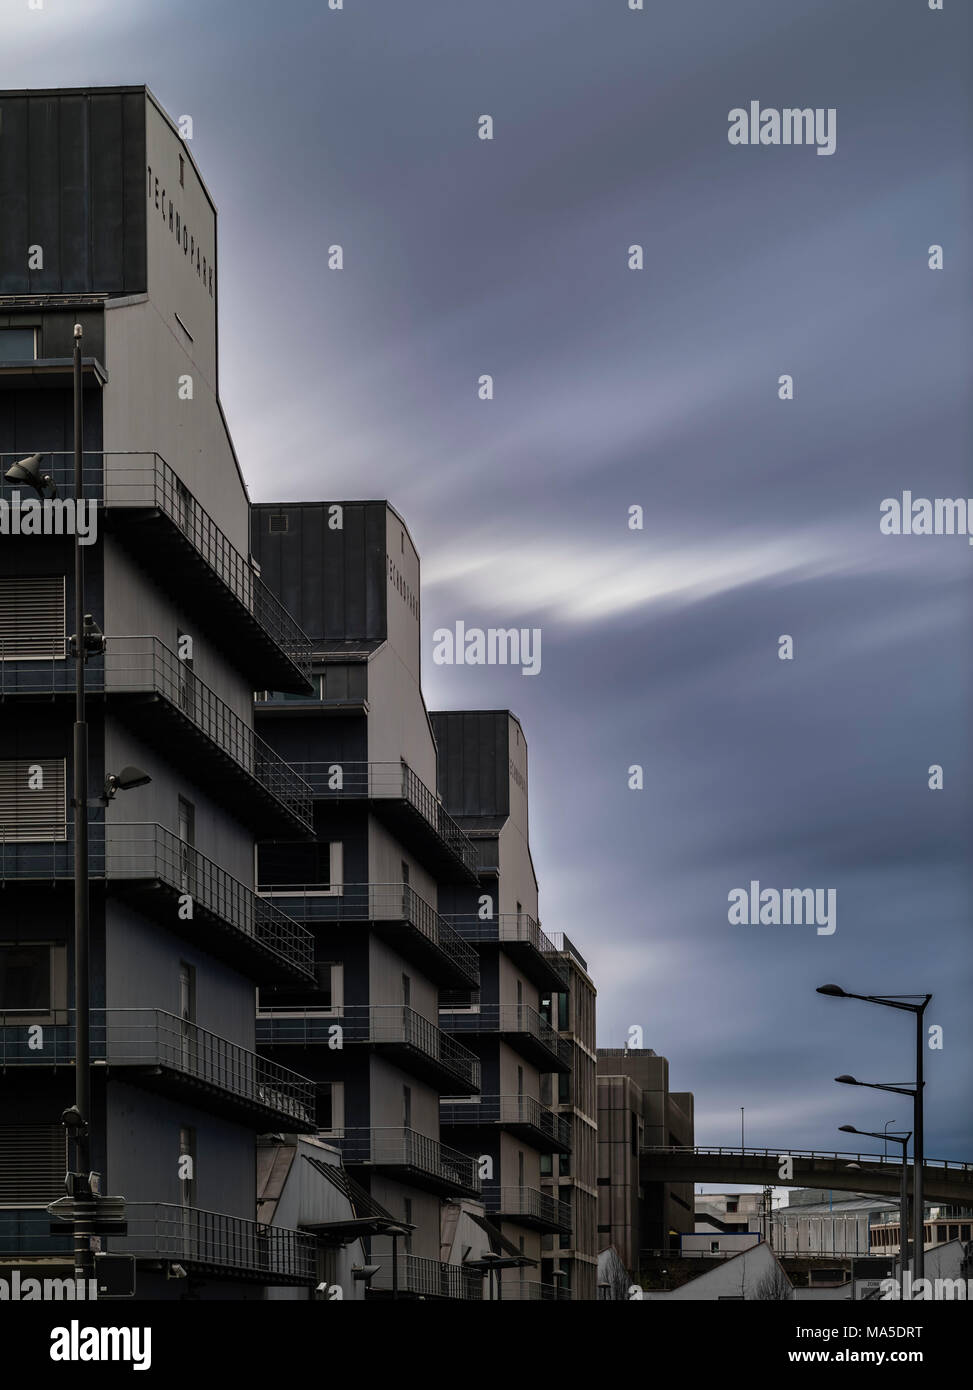 Technopark in Zurich West with dramatic cloud atmosphere - Stock Image